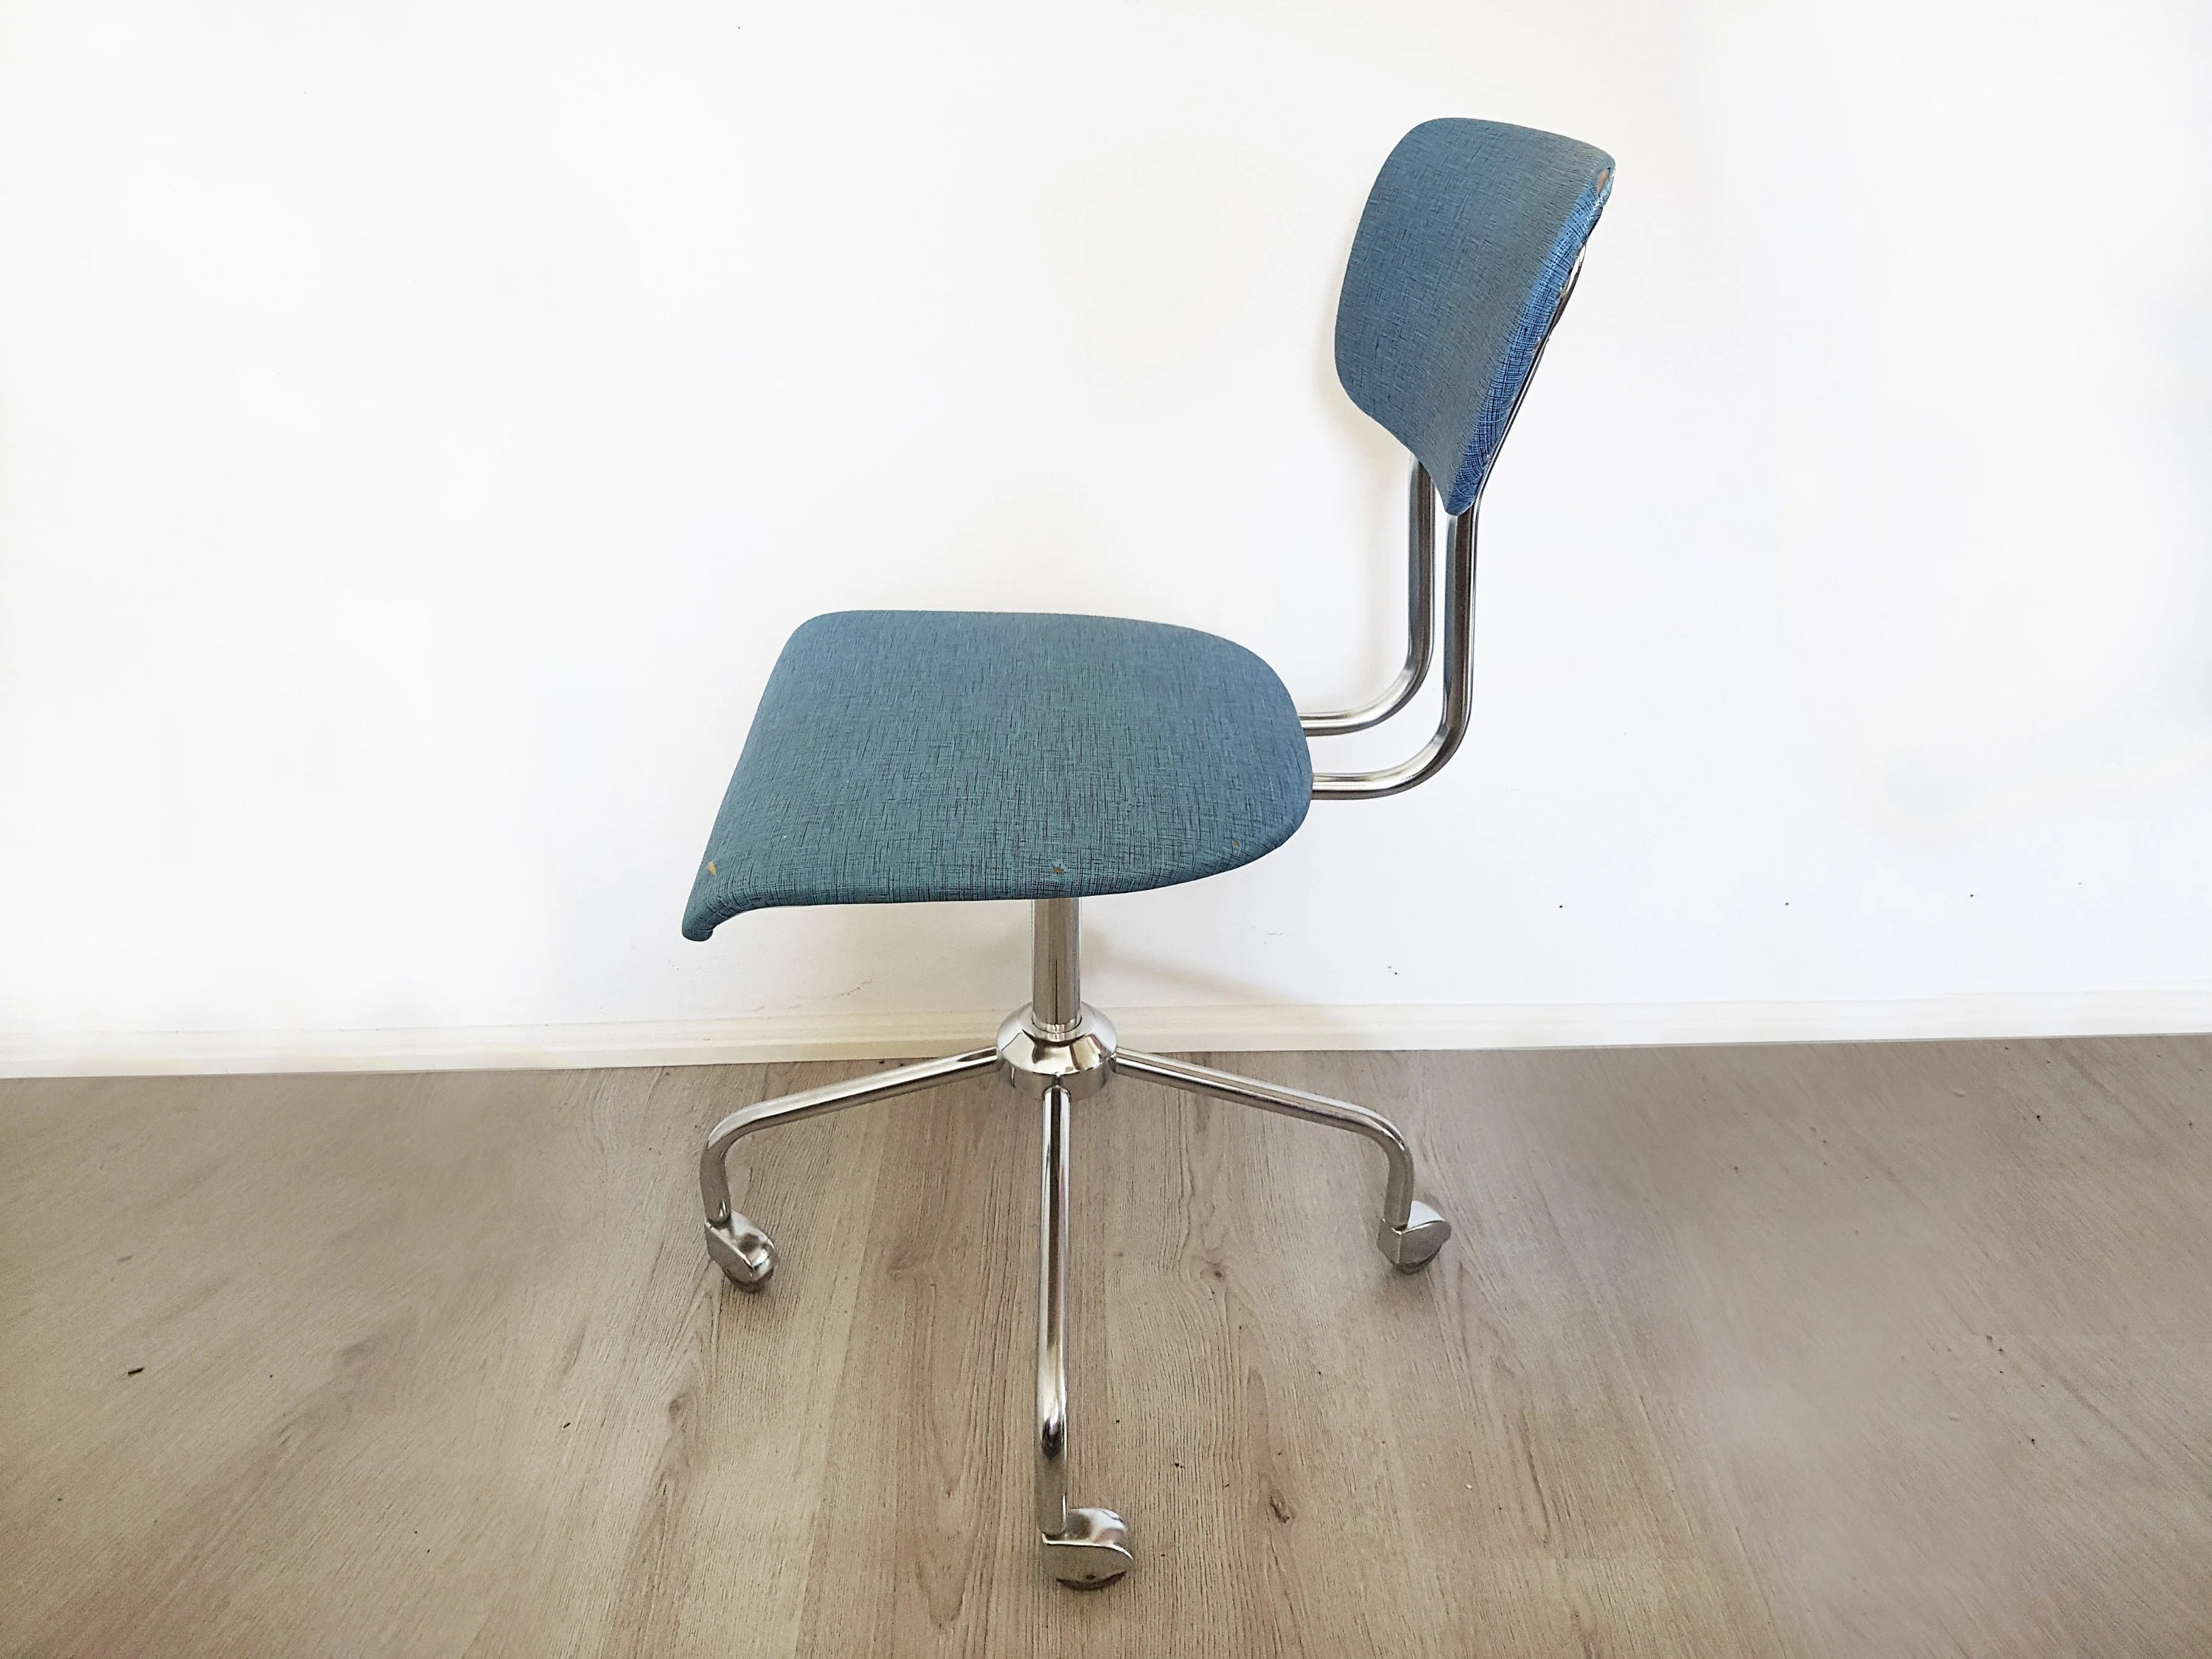 Chair On Wheels Midcentury Office Chair Vintage Rotary Chair On Wheels Chrome Plated Steel Minimalism